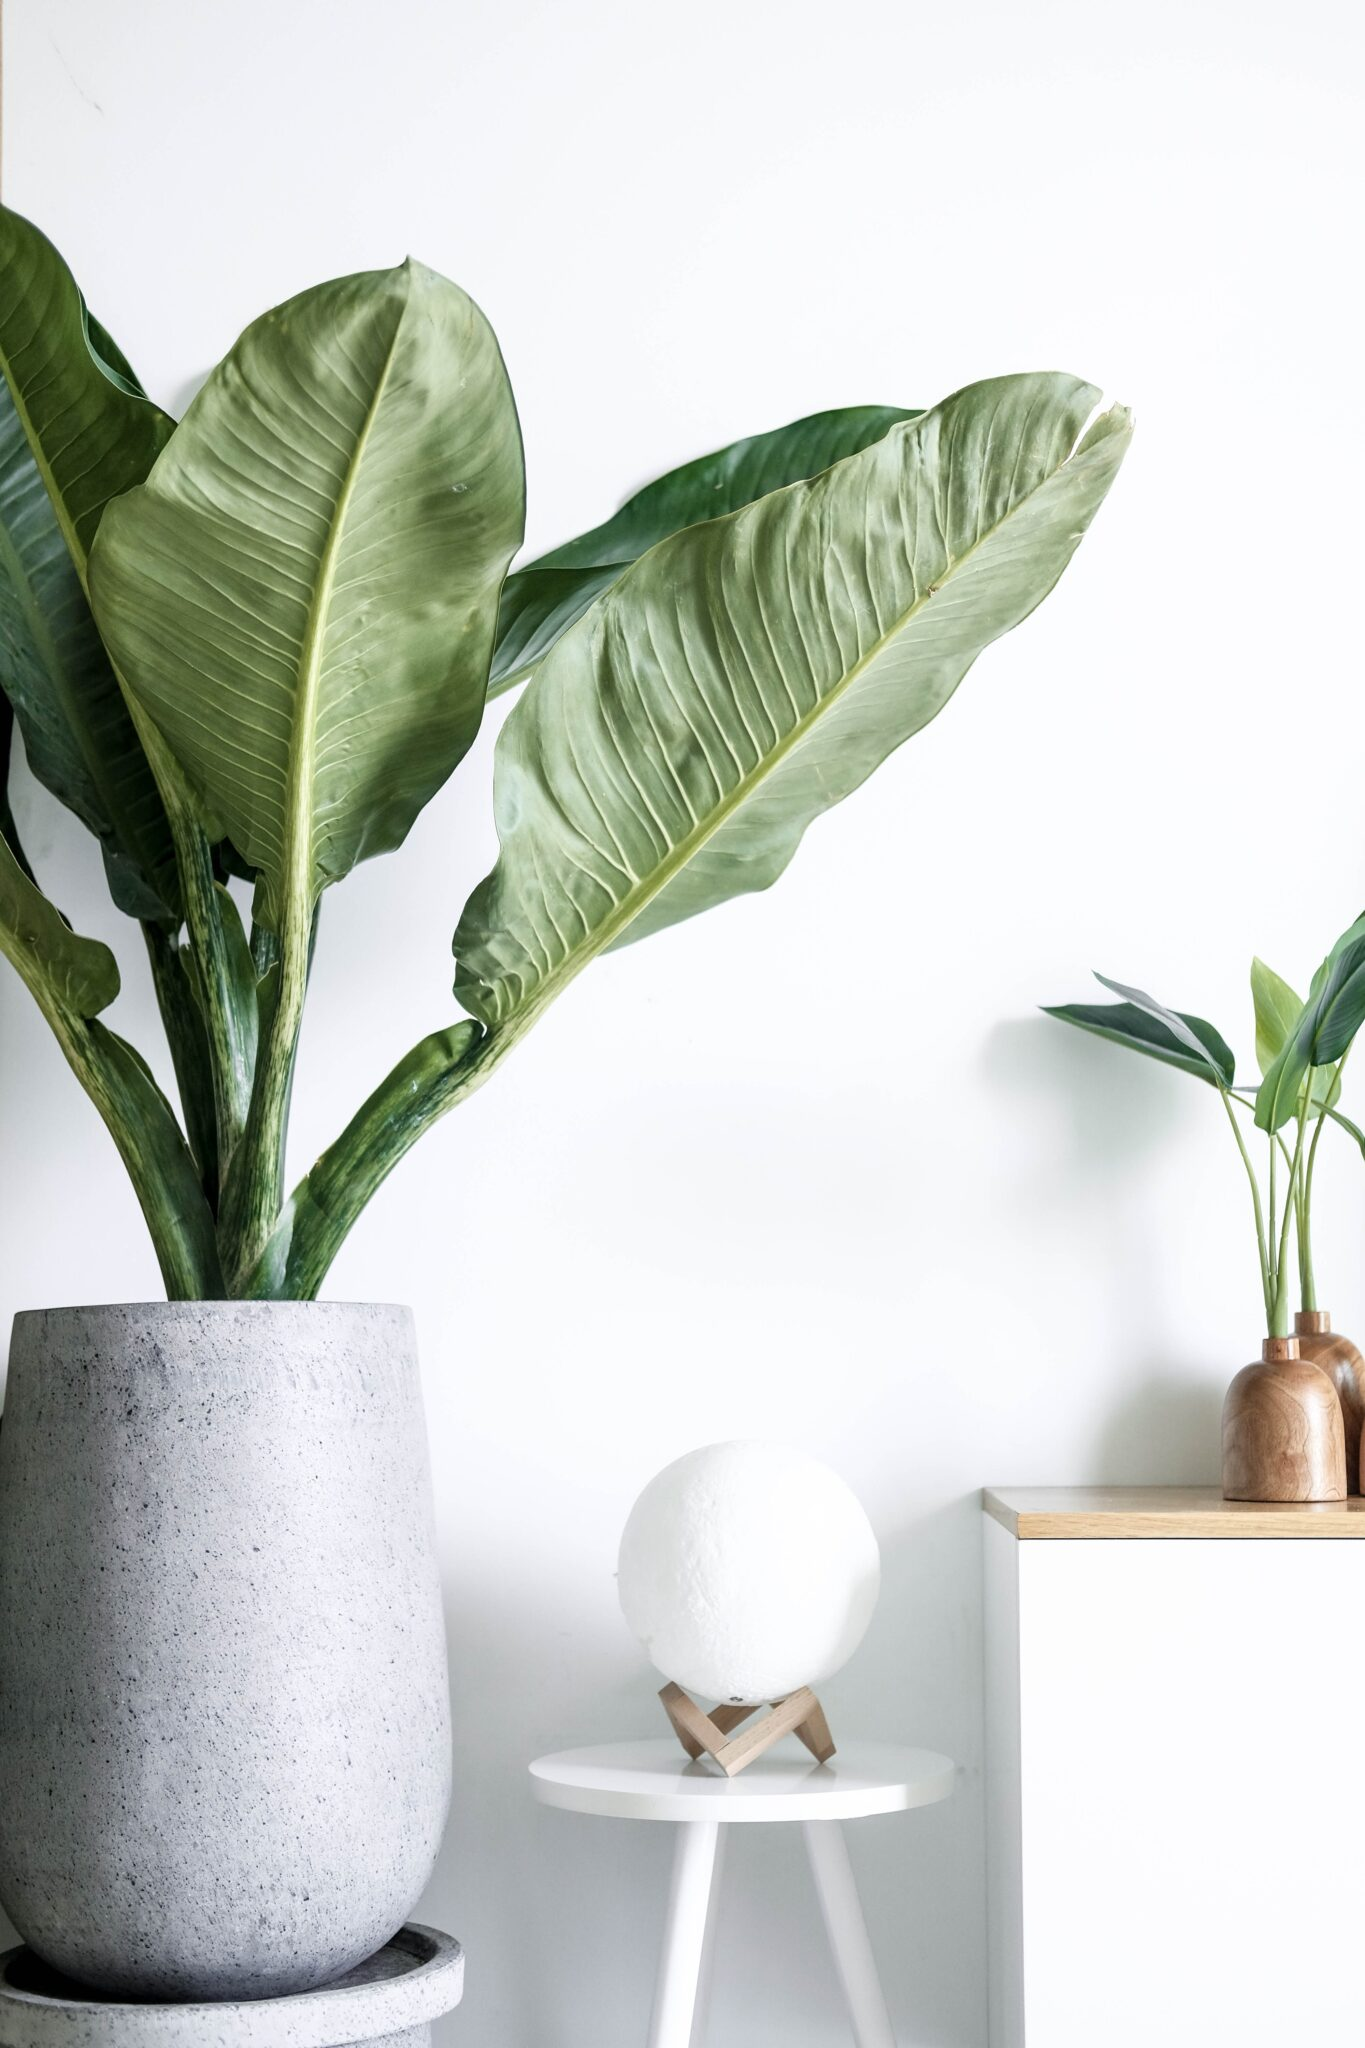 Shelves with beautiful neutral decor and lush green plants. This article touches upon small changes that can make a big difference to your home.